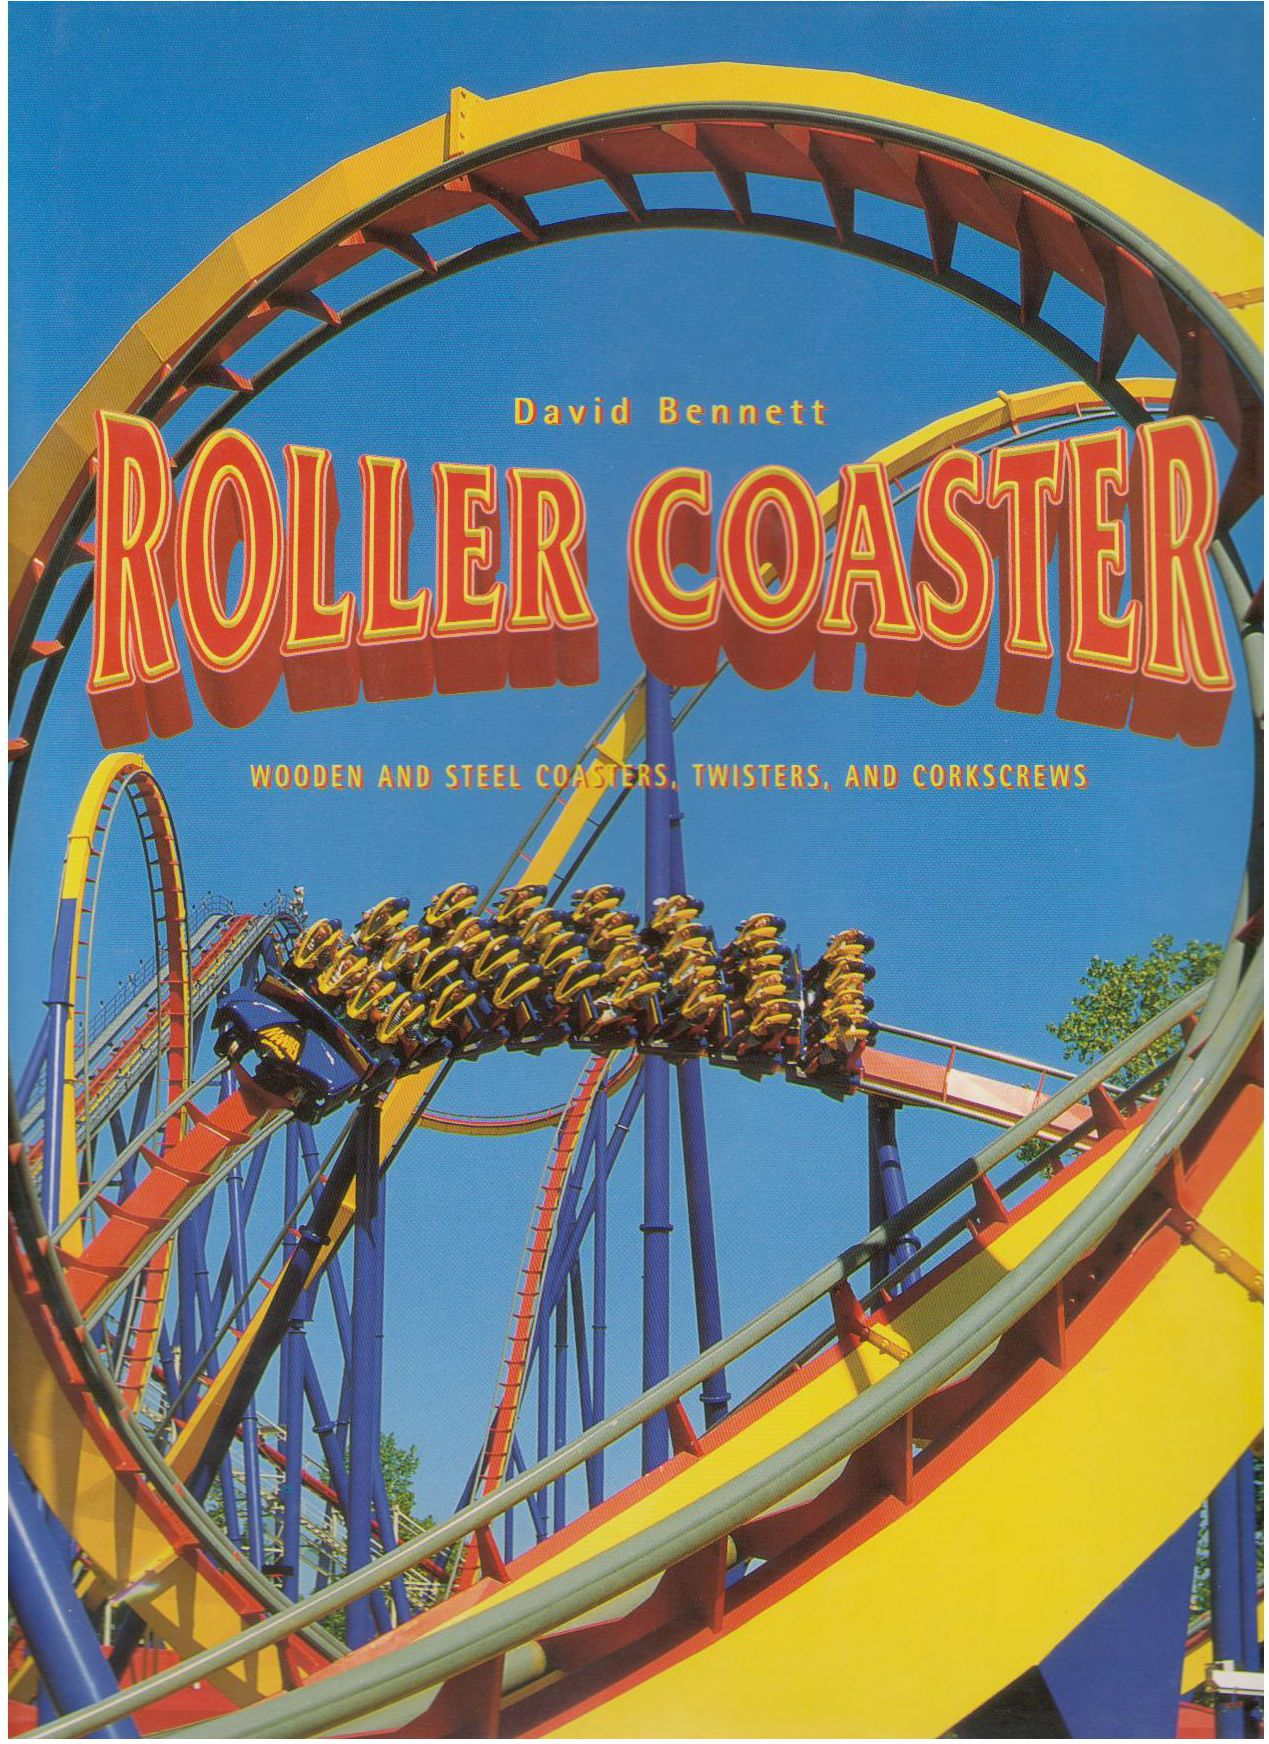 Roller Coaster: Wooden and Steel Coasters, Twisters and Corkscrews, Bennett, David